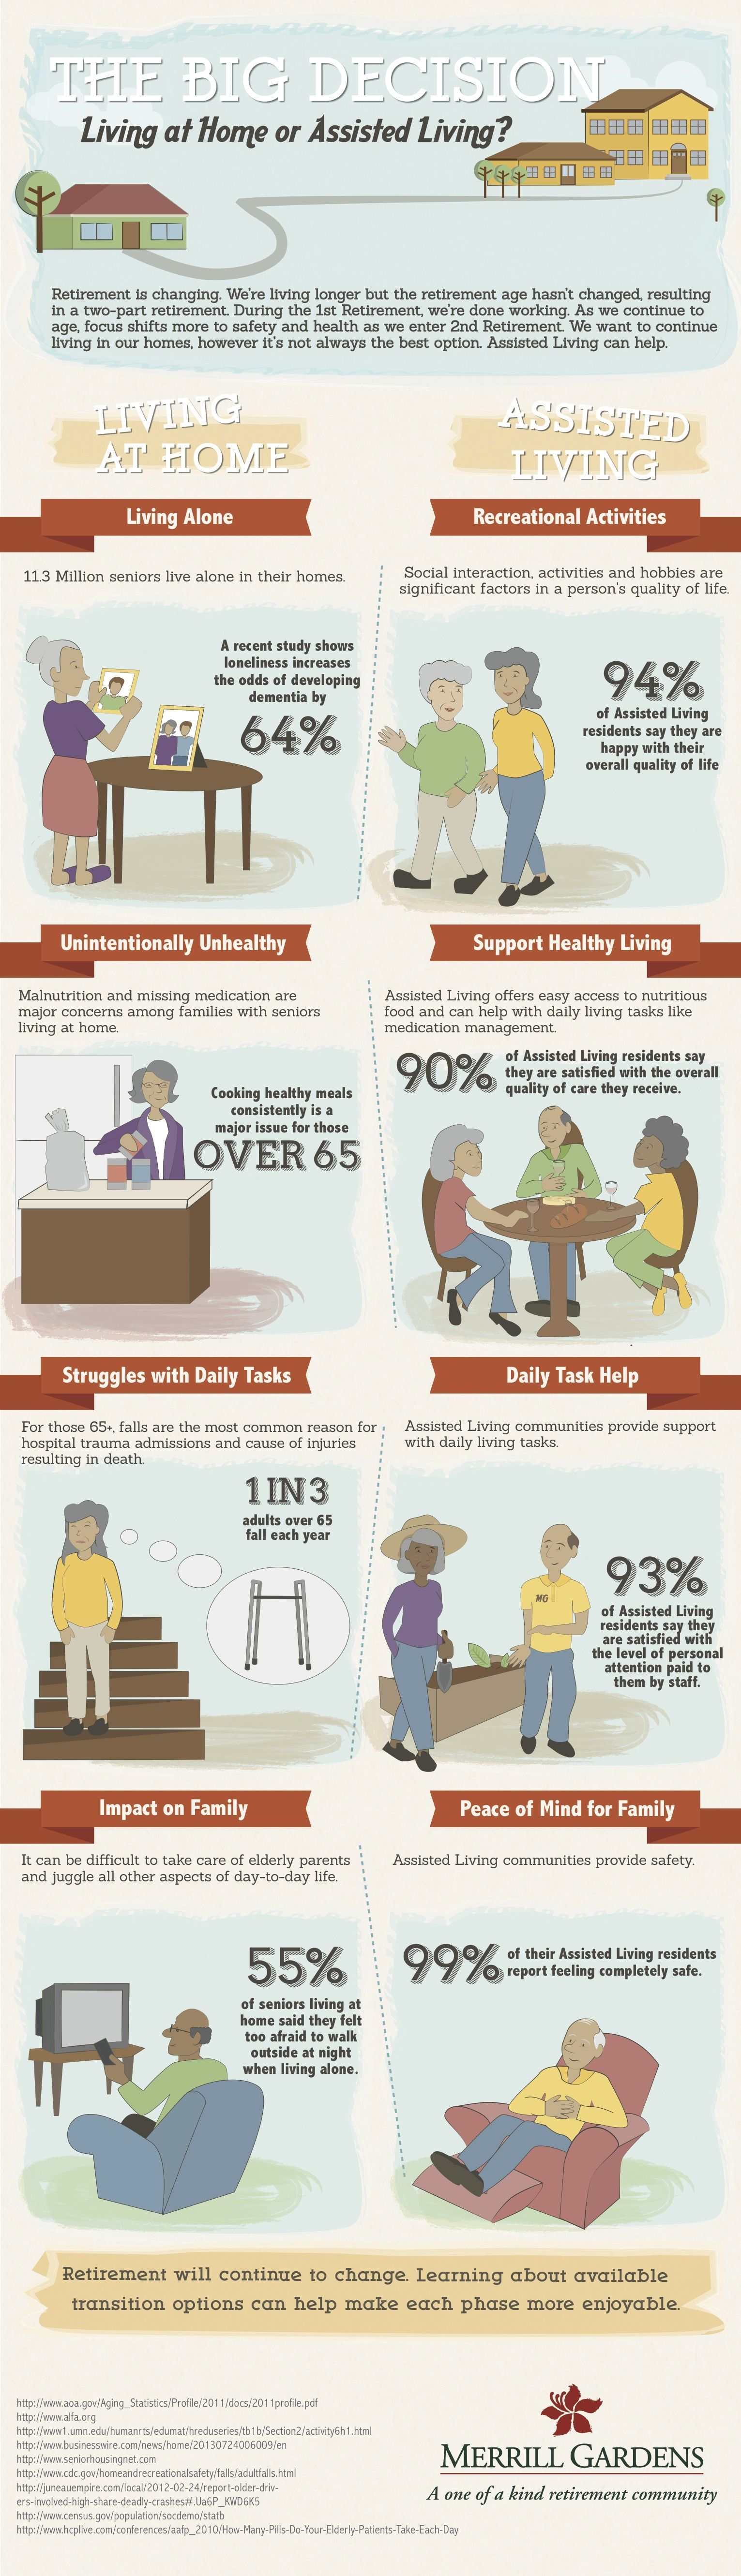 Assisted Living Versus Living At Home A Guide To Making